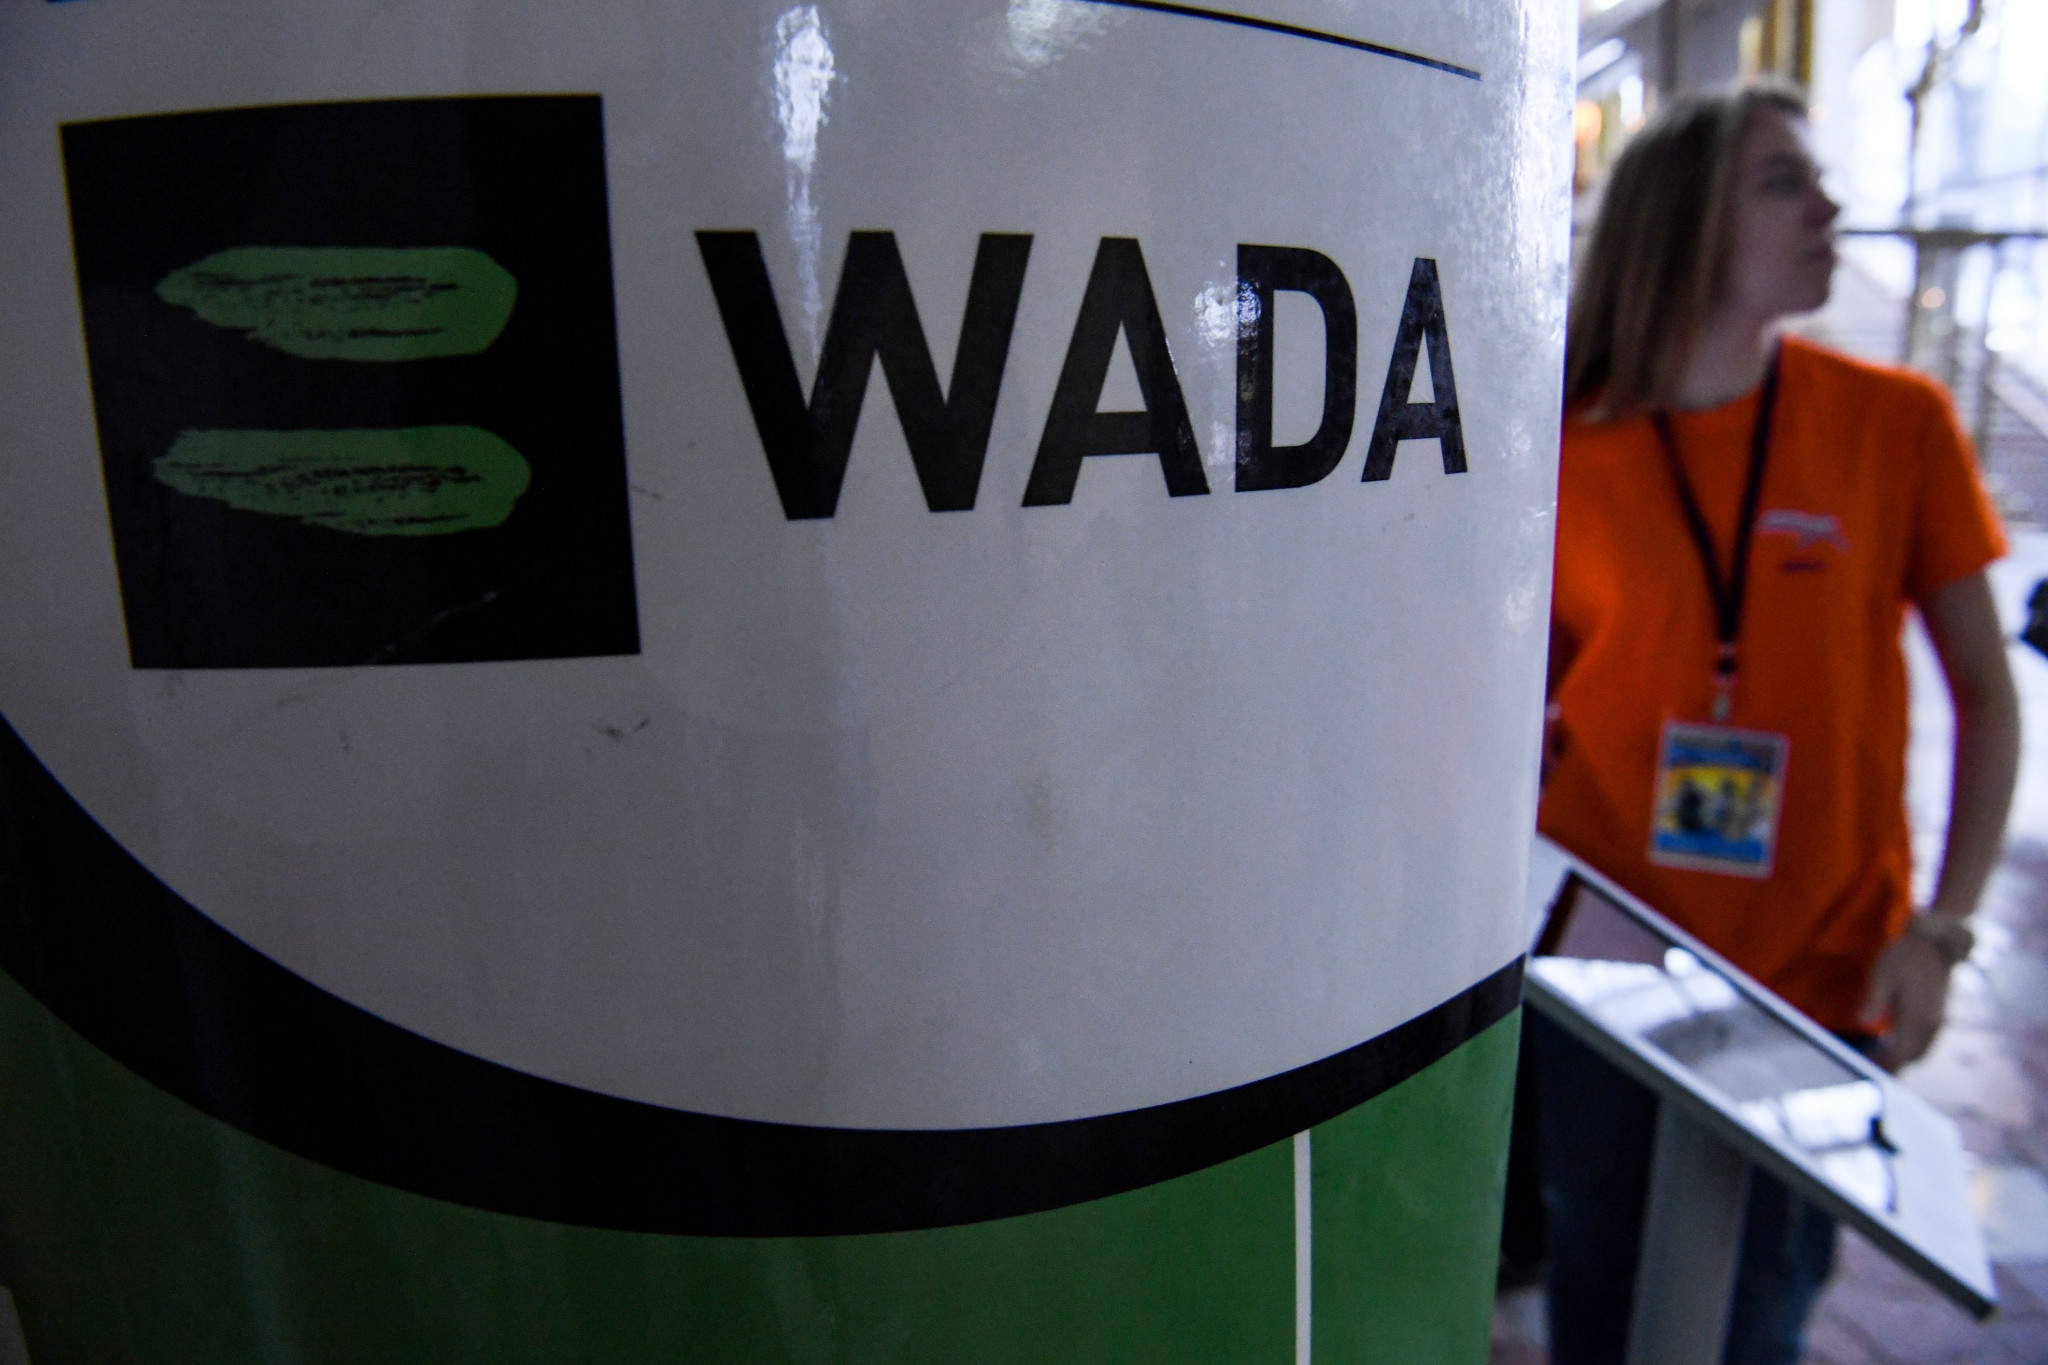 WADA issued a reminder that the 2021 World Anti-Doping Code is now in force ©Getty Images